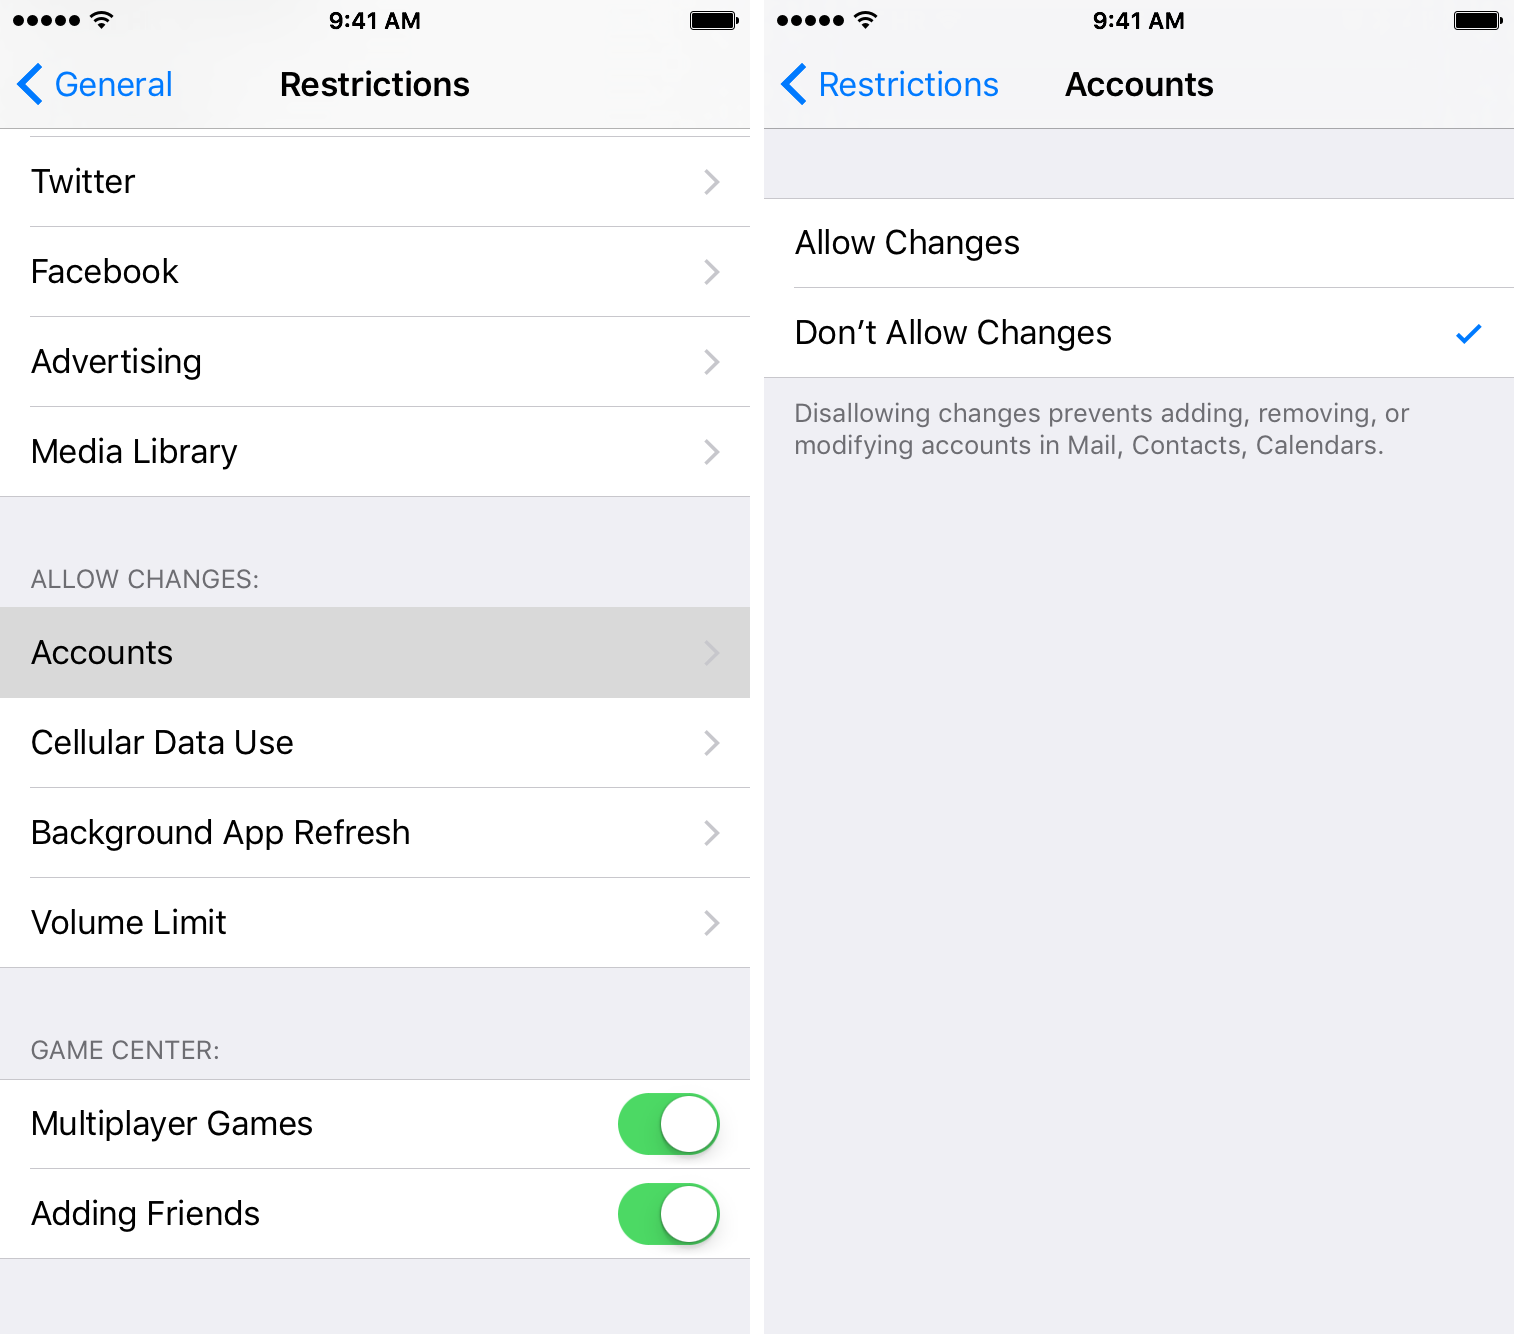 iOS 9 How to restrict accounts iPhone screenshot 001